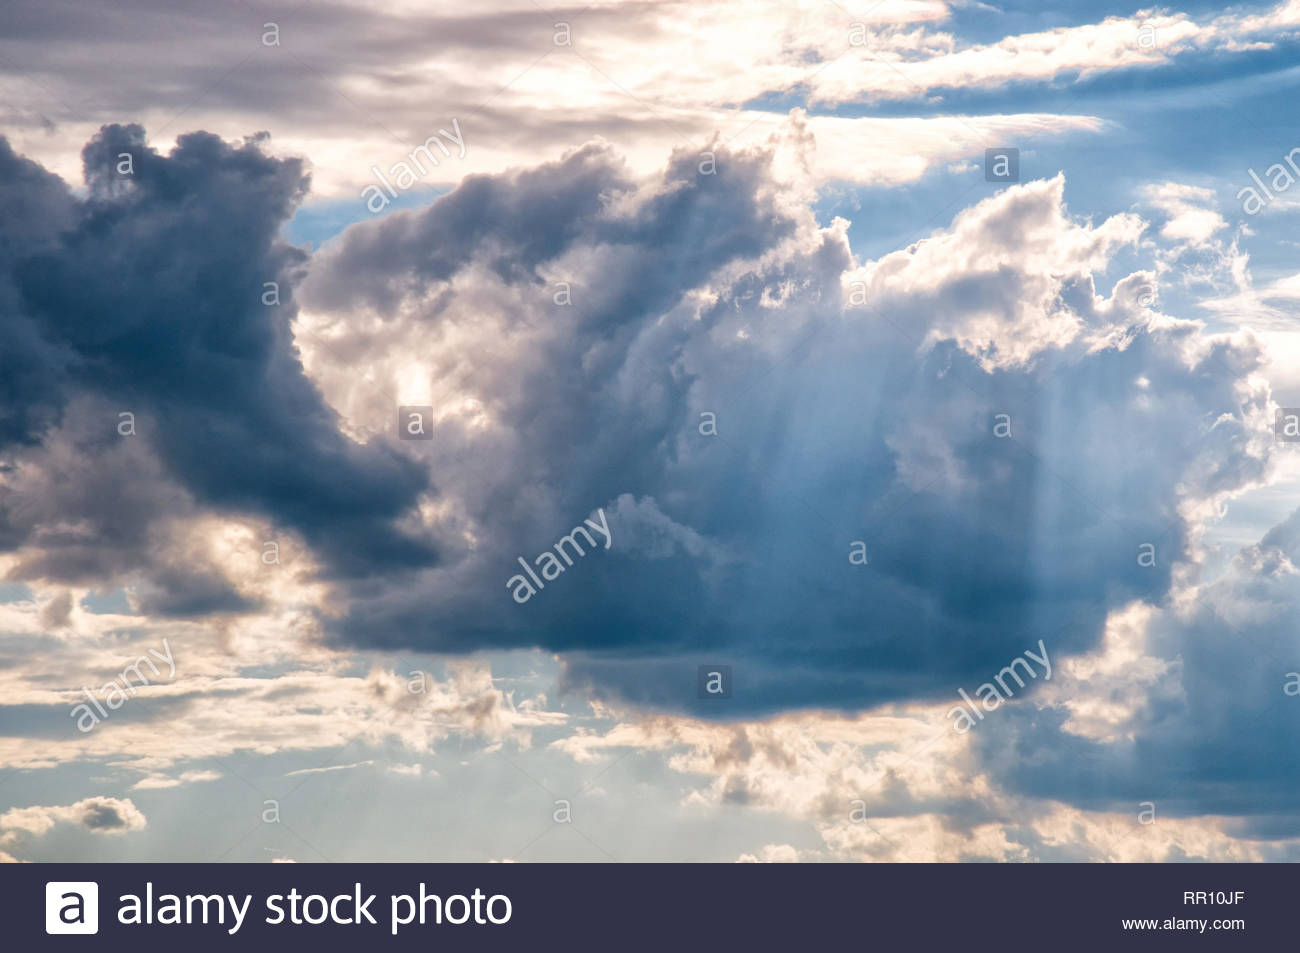 Moody grey blue clouds in sky with sun rays - Stock Image